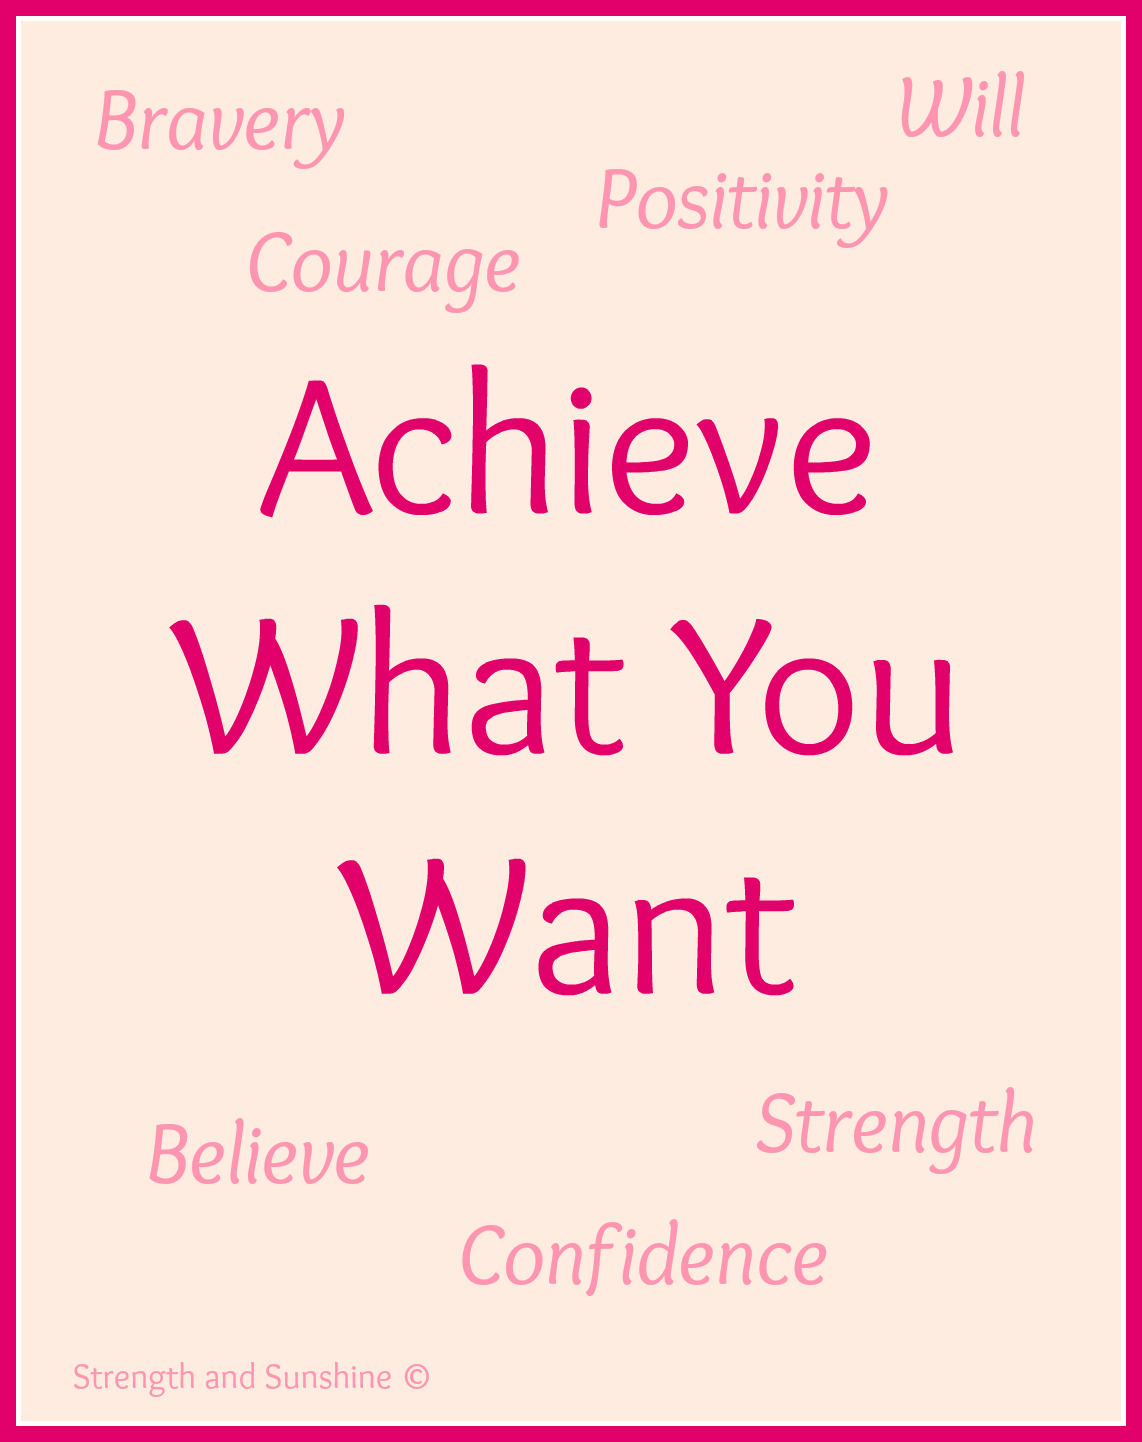 Achieve What You Want | Strength and Sunshine @RebeccaGF666 #motivation #achieve #positivity #confidence #goals